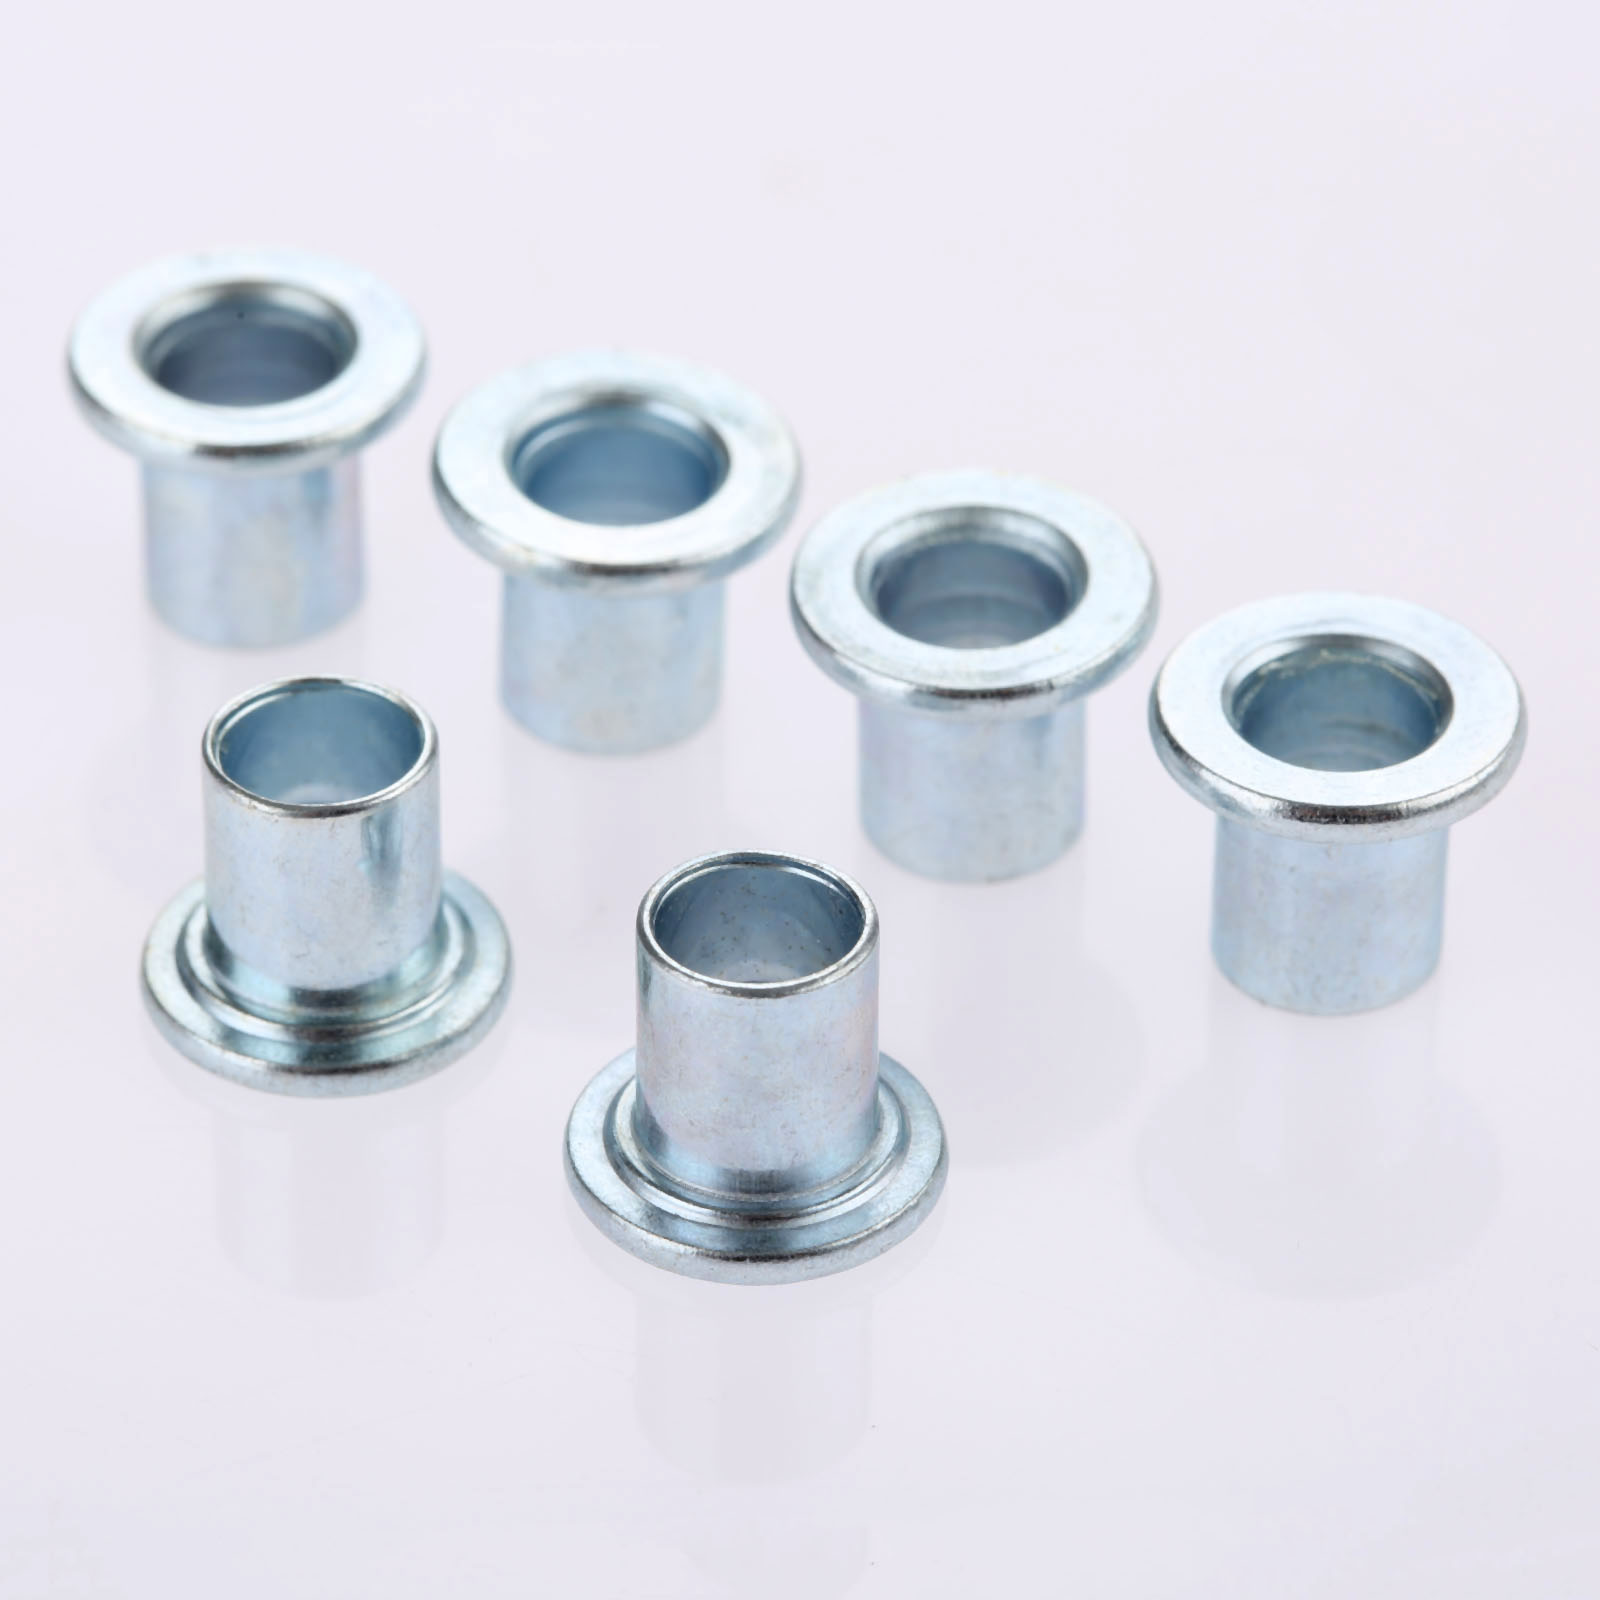 16Pcs Iron Roller Skate Wheels Special Accessories Center Bearing Bushing Spacers For Skating Wheels 608/688 Fit 8mm Bearings